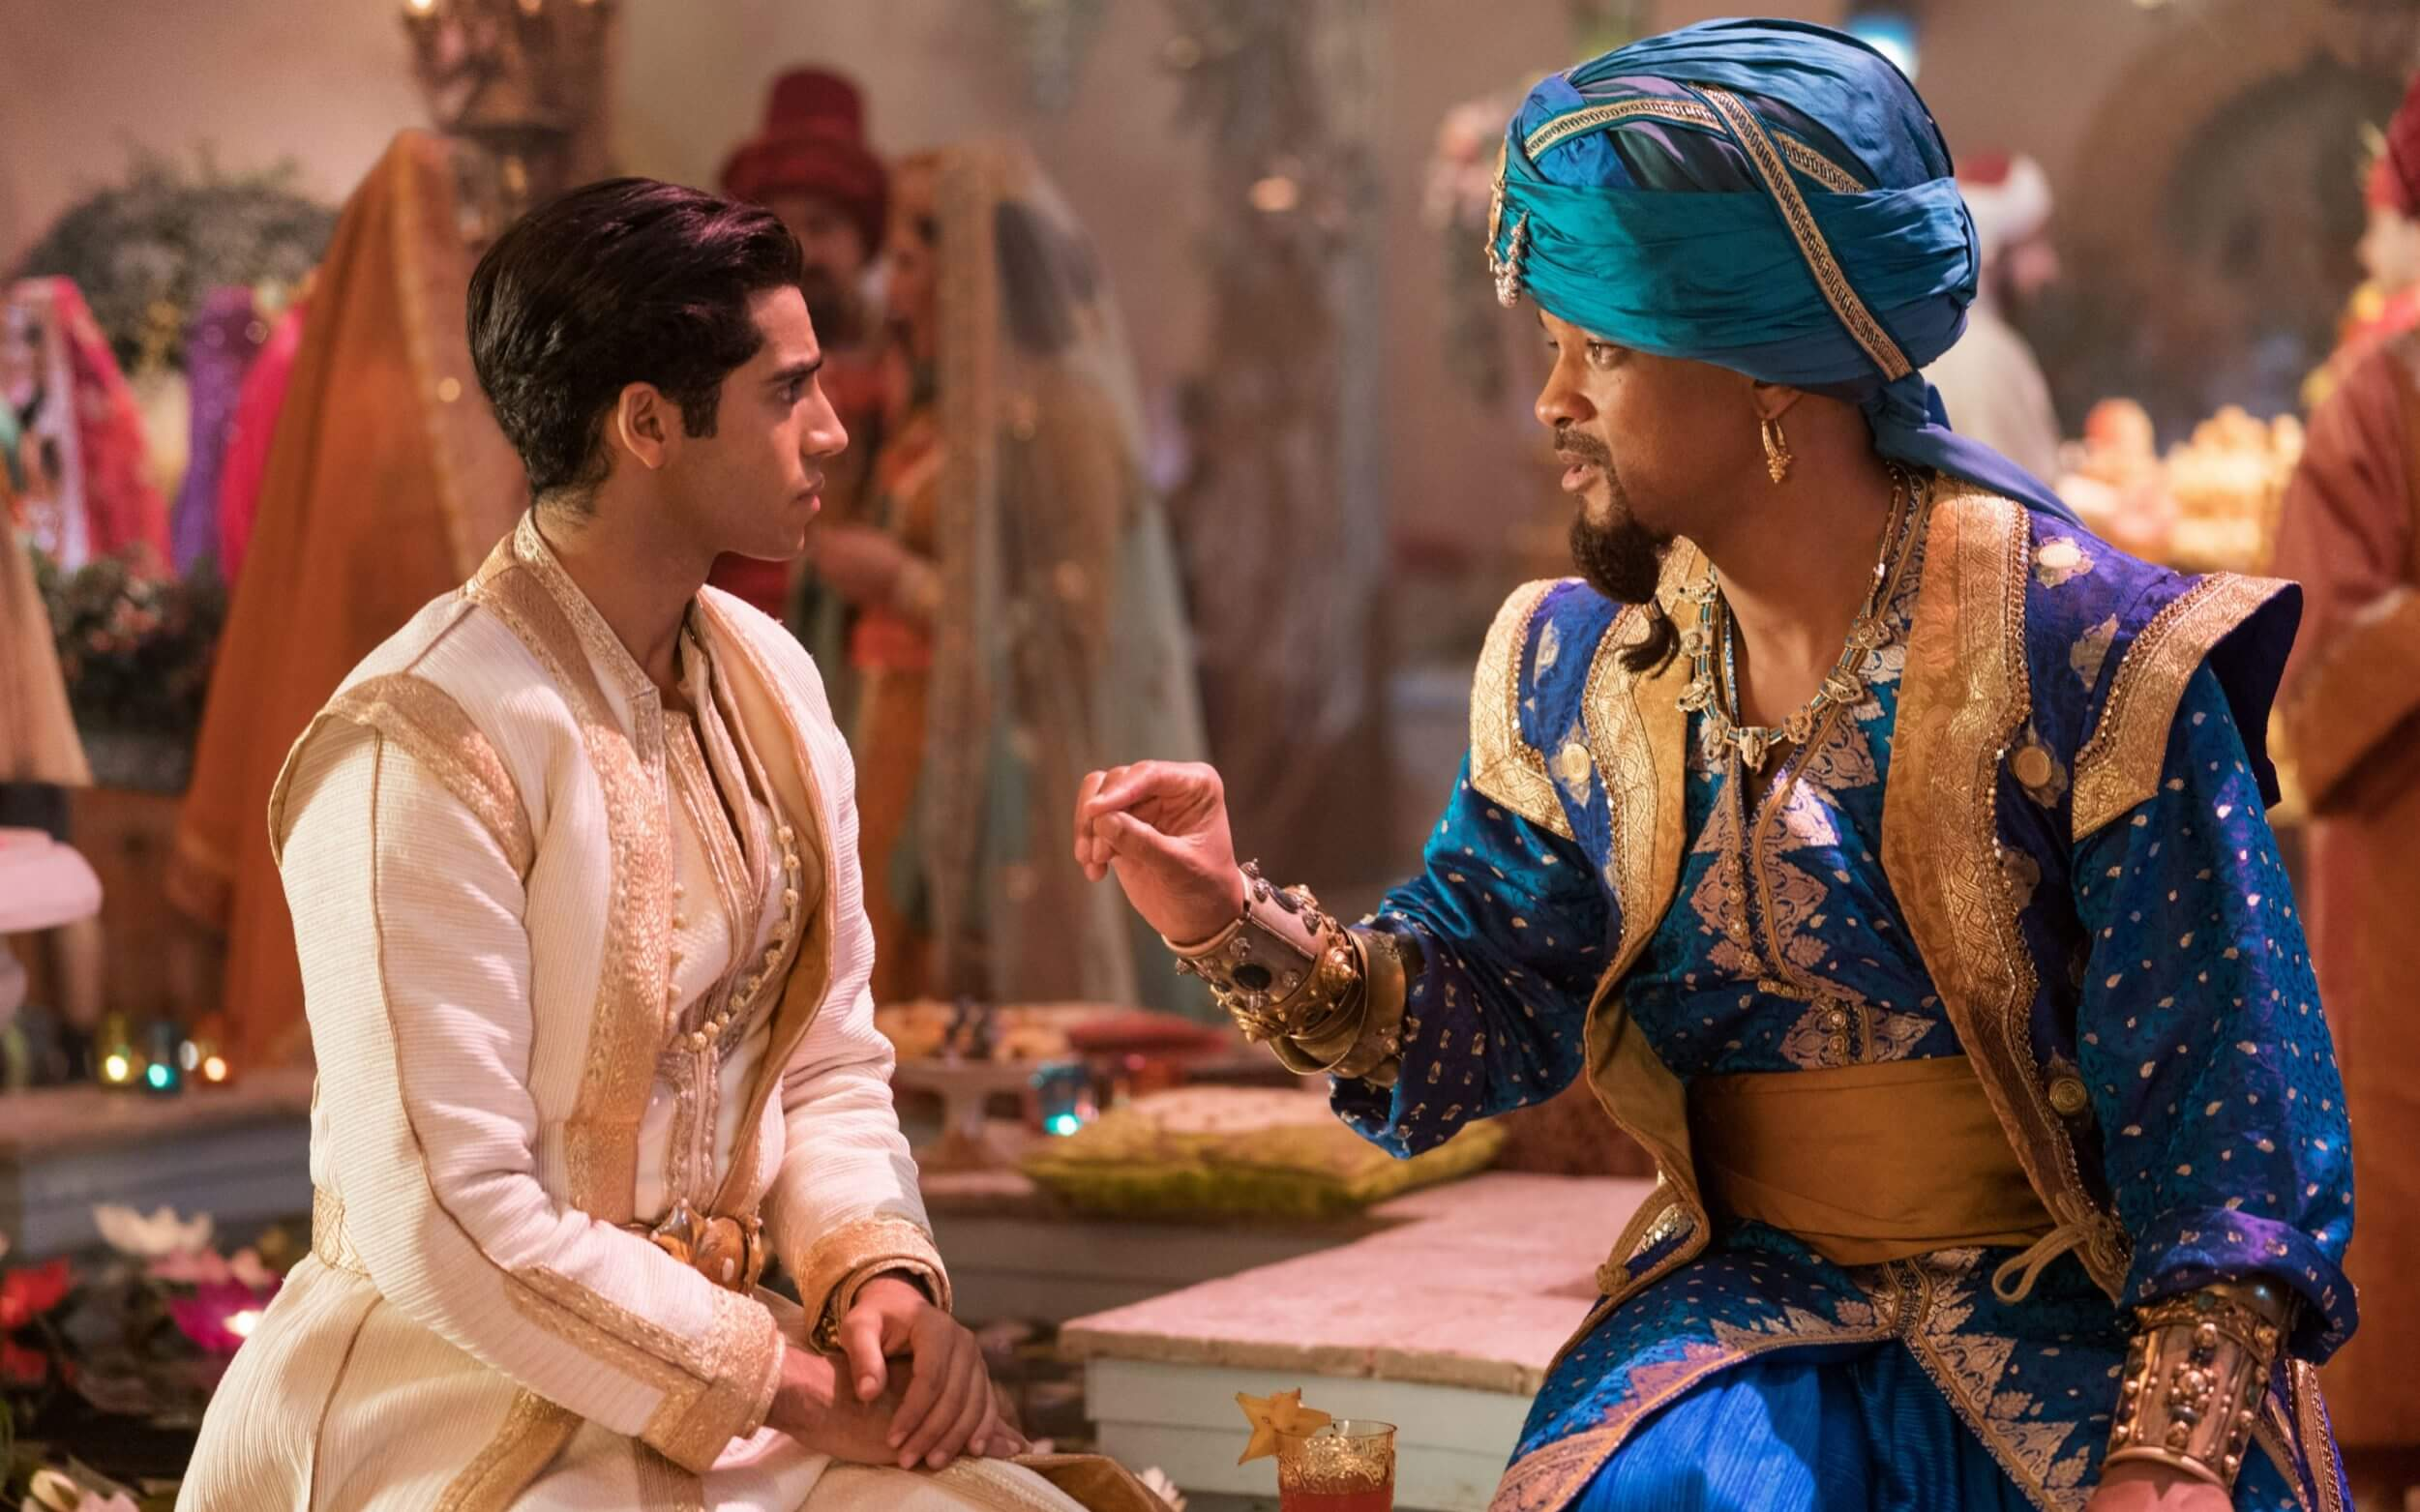 aladdin2019-movie